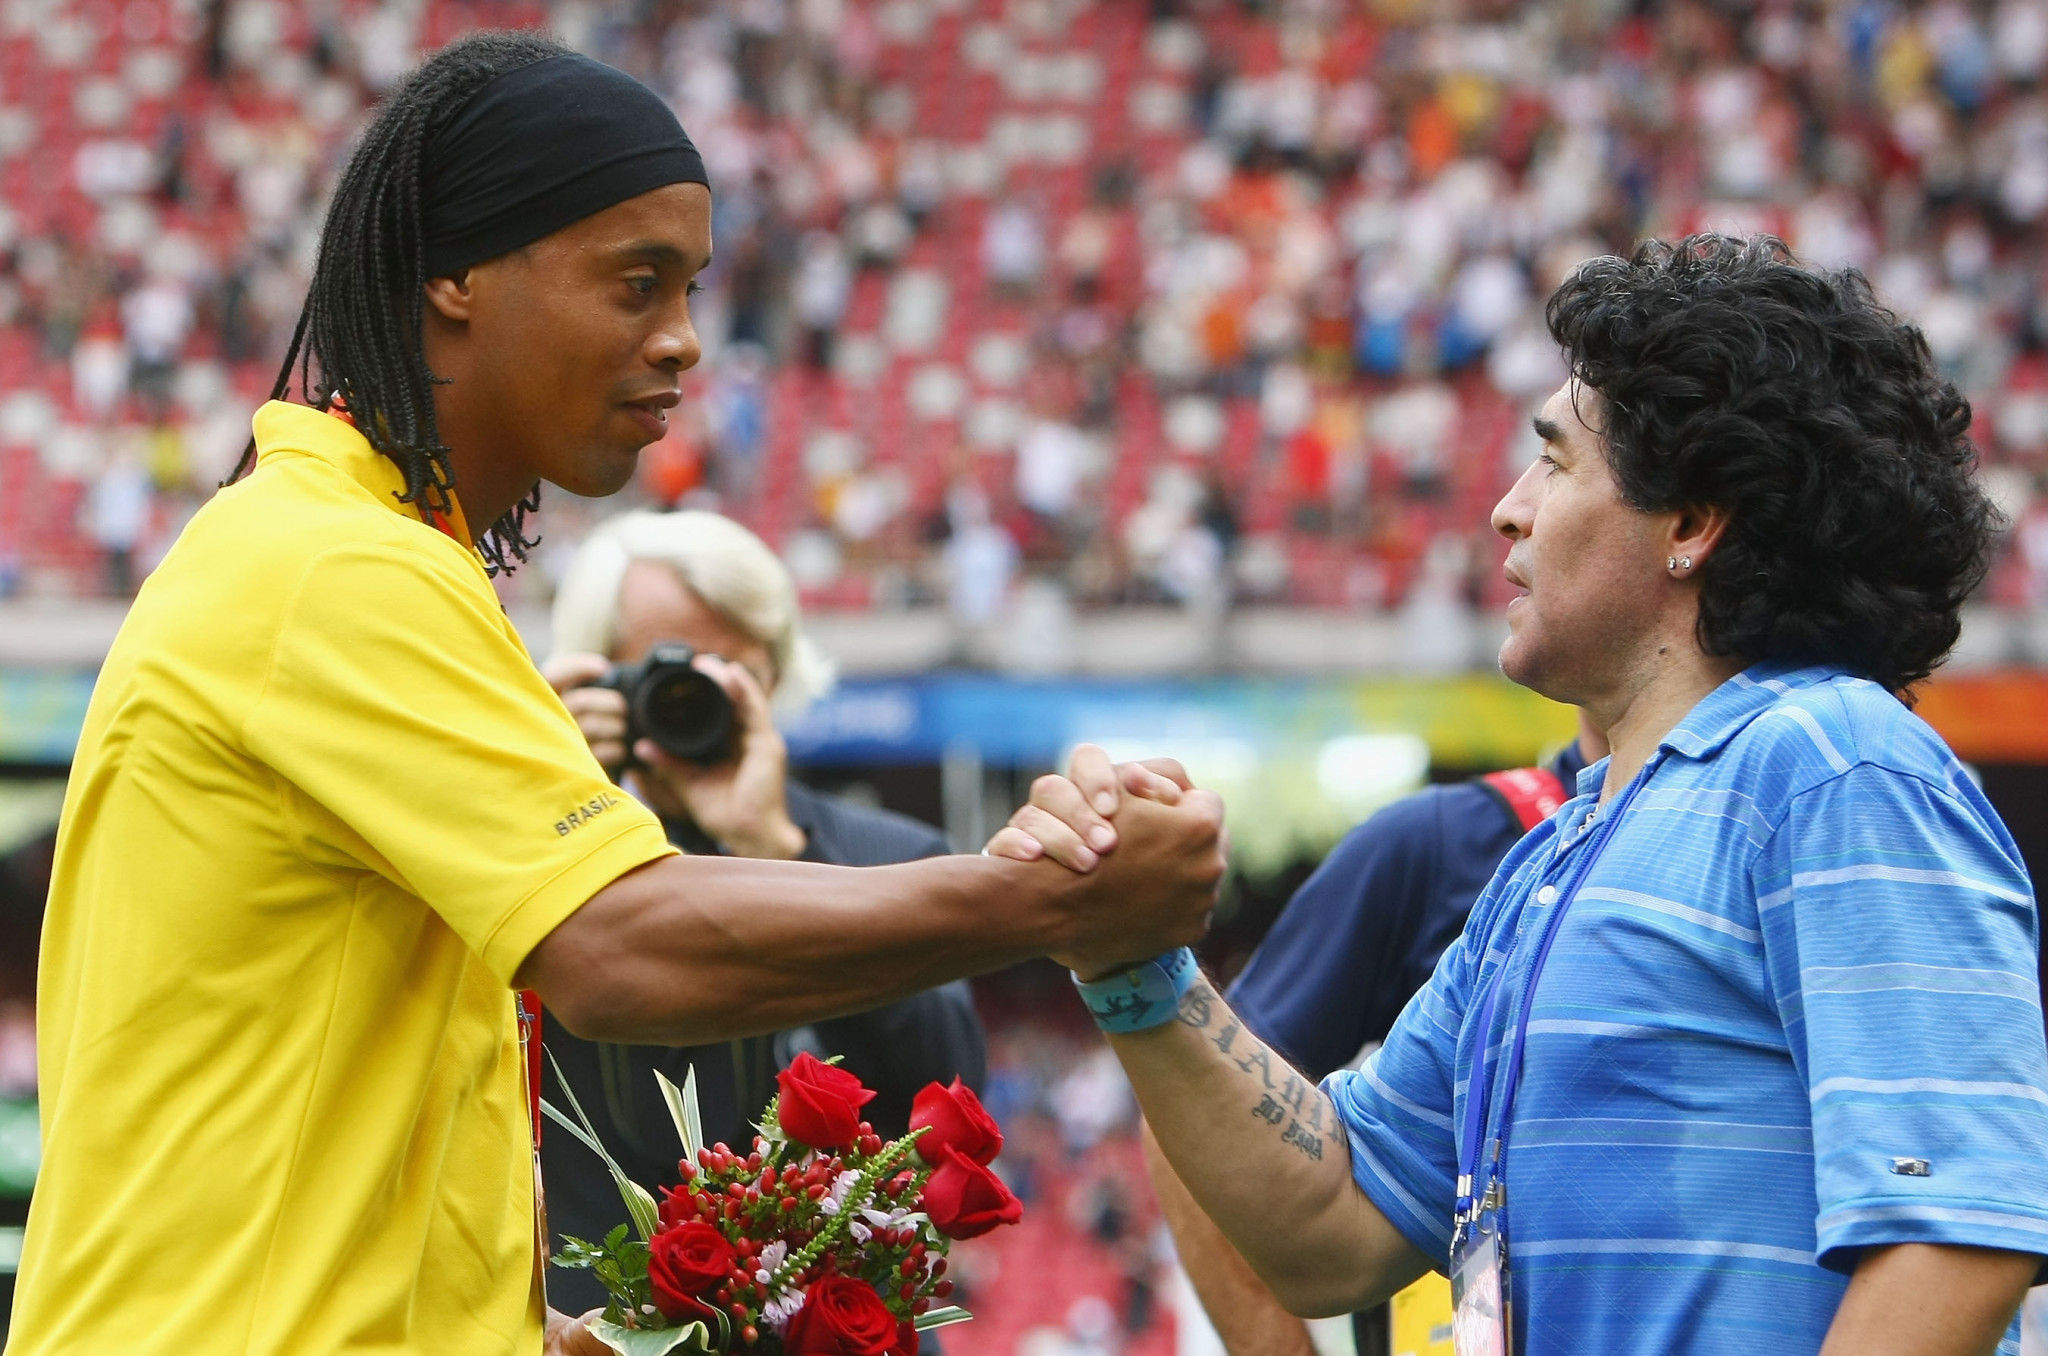 Ronaldinho was an overage player at Beijing 2008 as Diego Maradona cheered Argentina to victory ©Getty Images